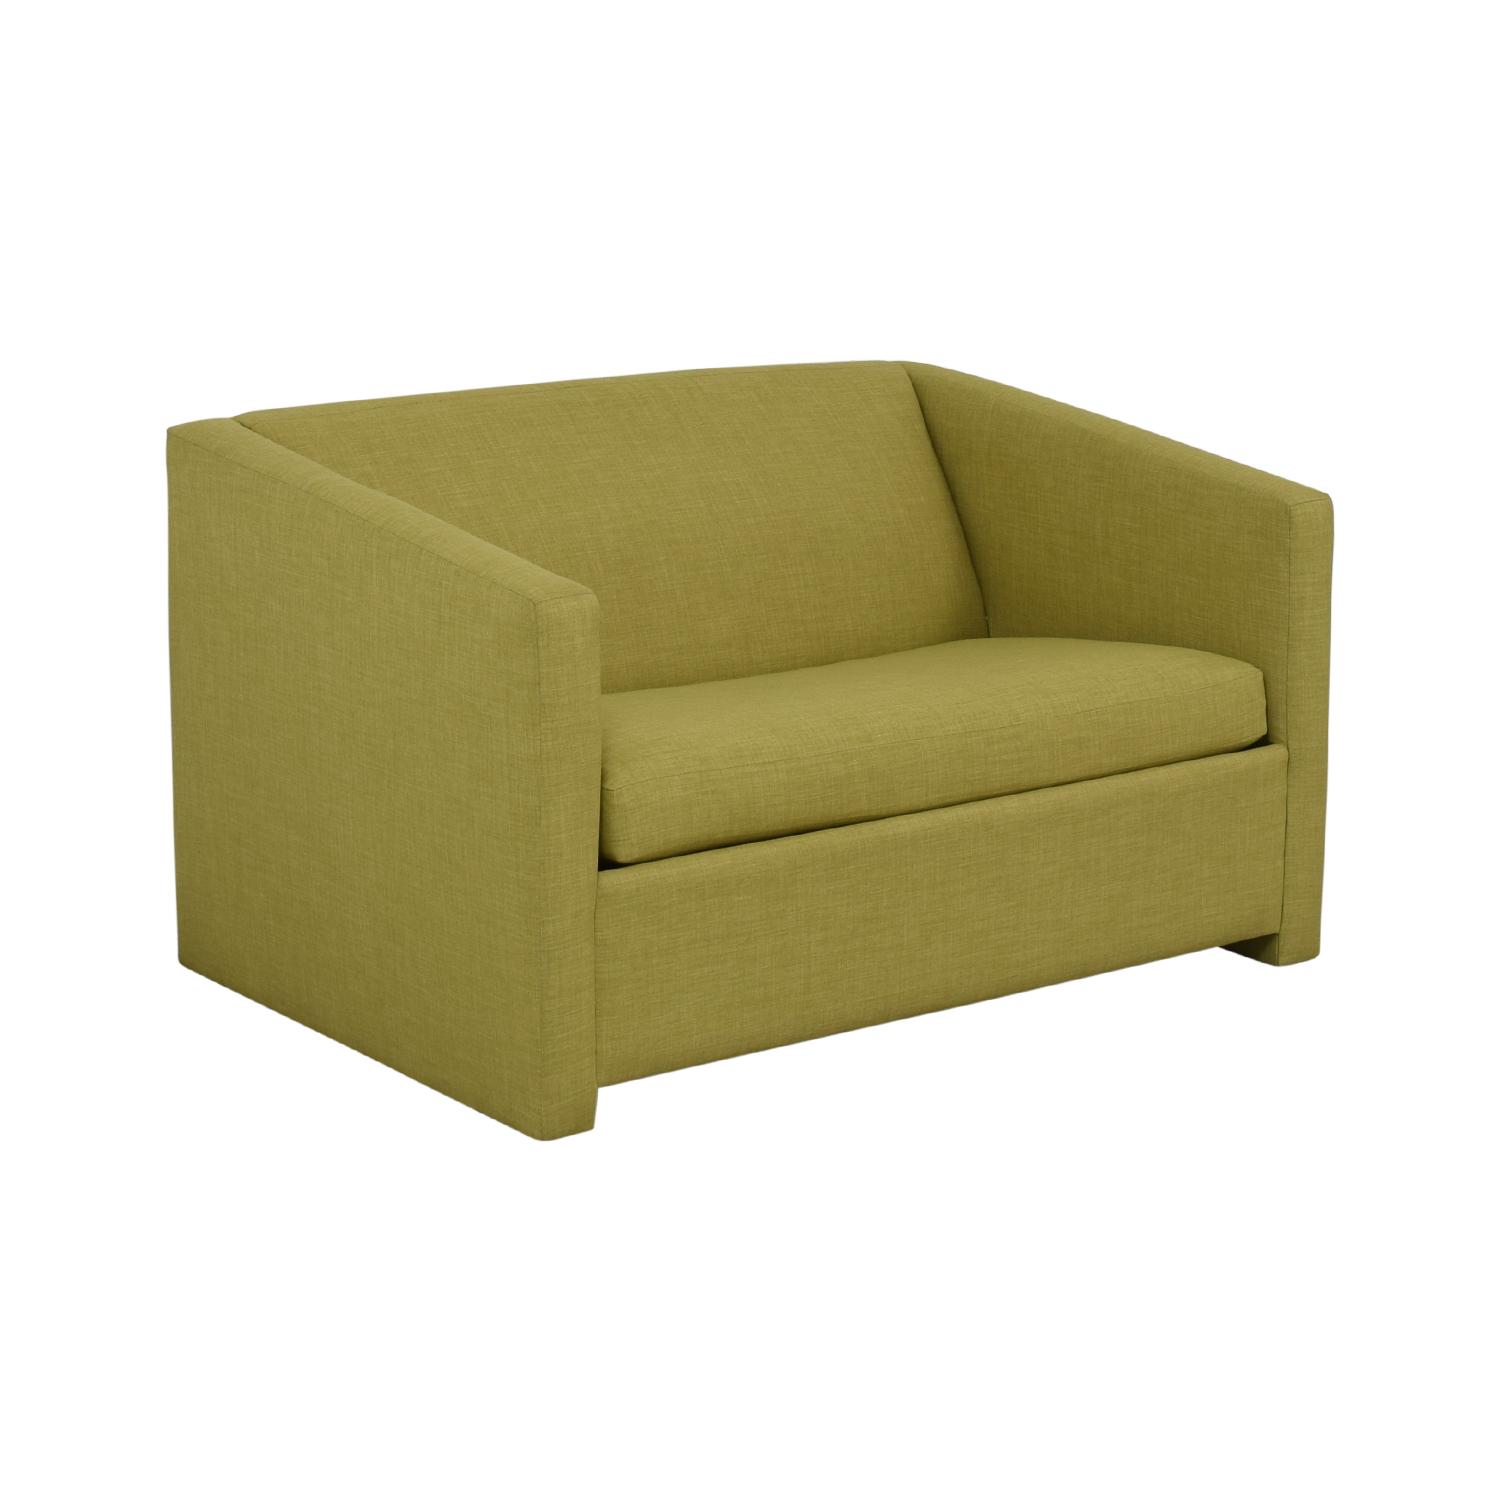 CB2 CB2 Lime Green Loveseat with Pullout Bed discount